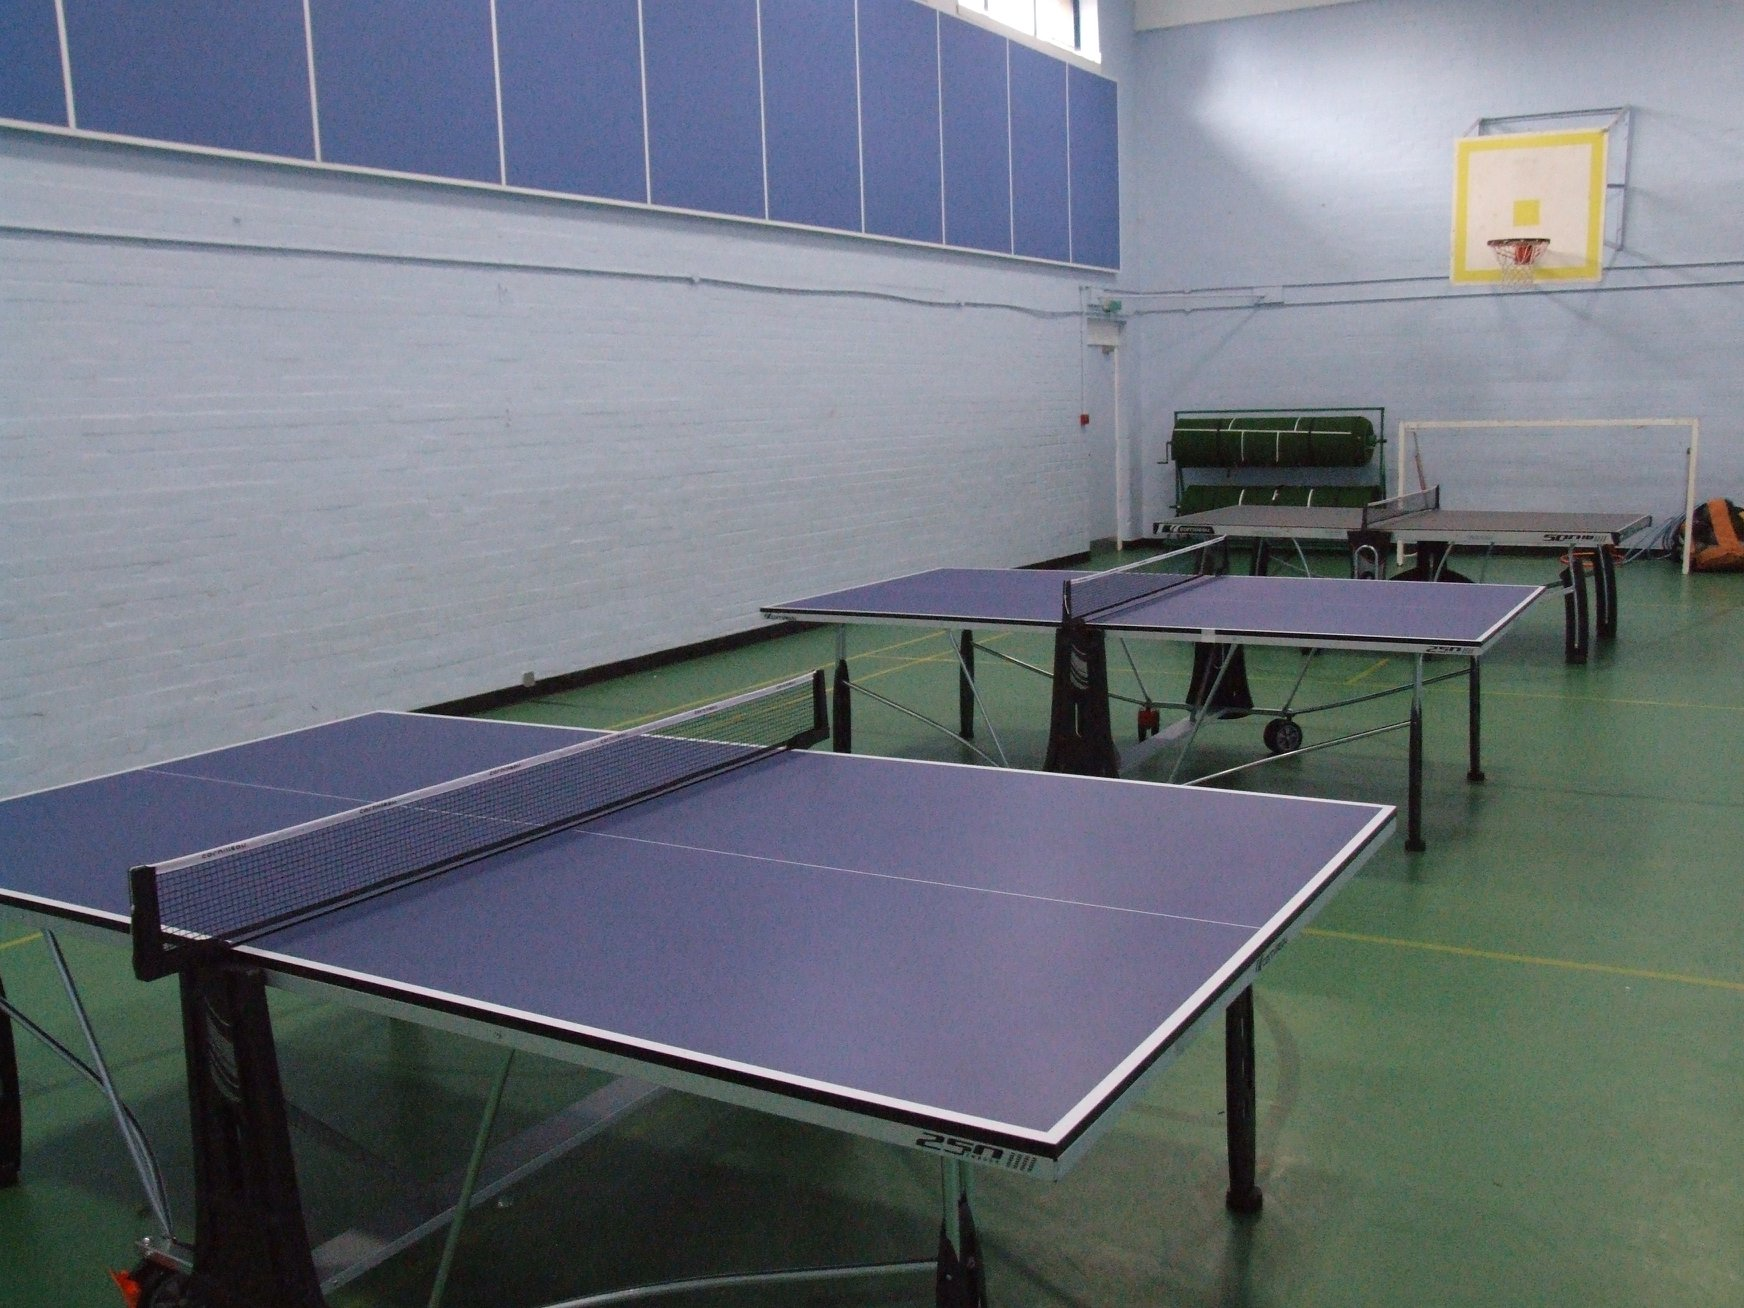 Table tennis setup in the sports hall